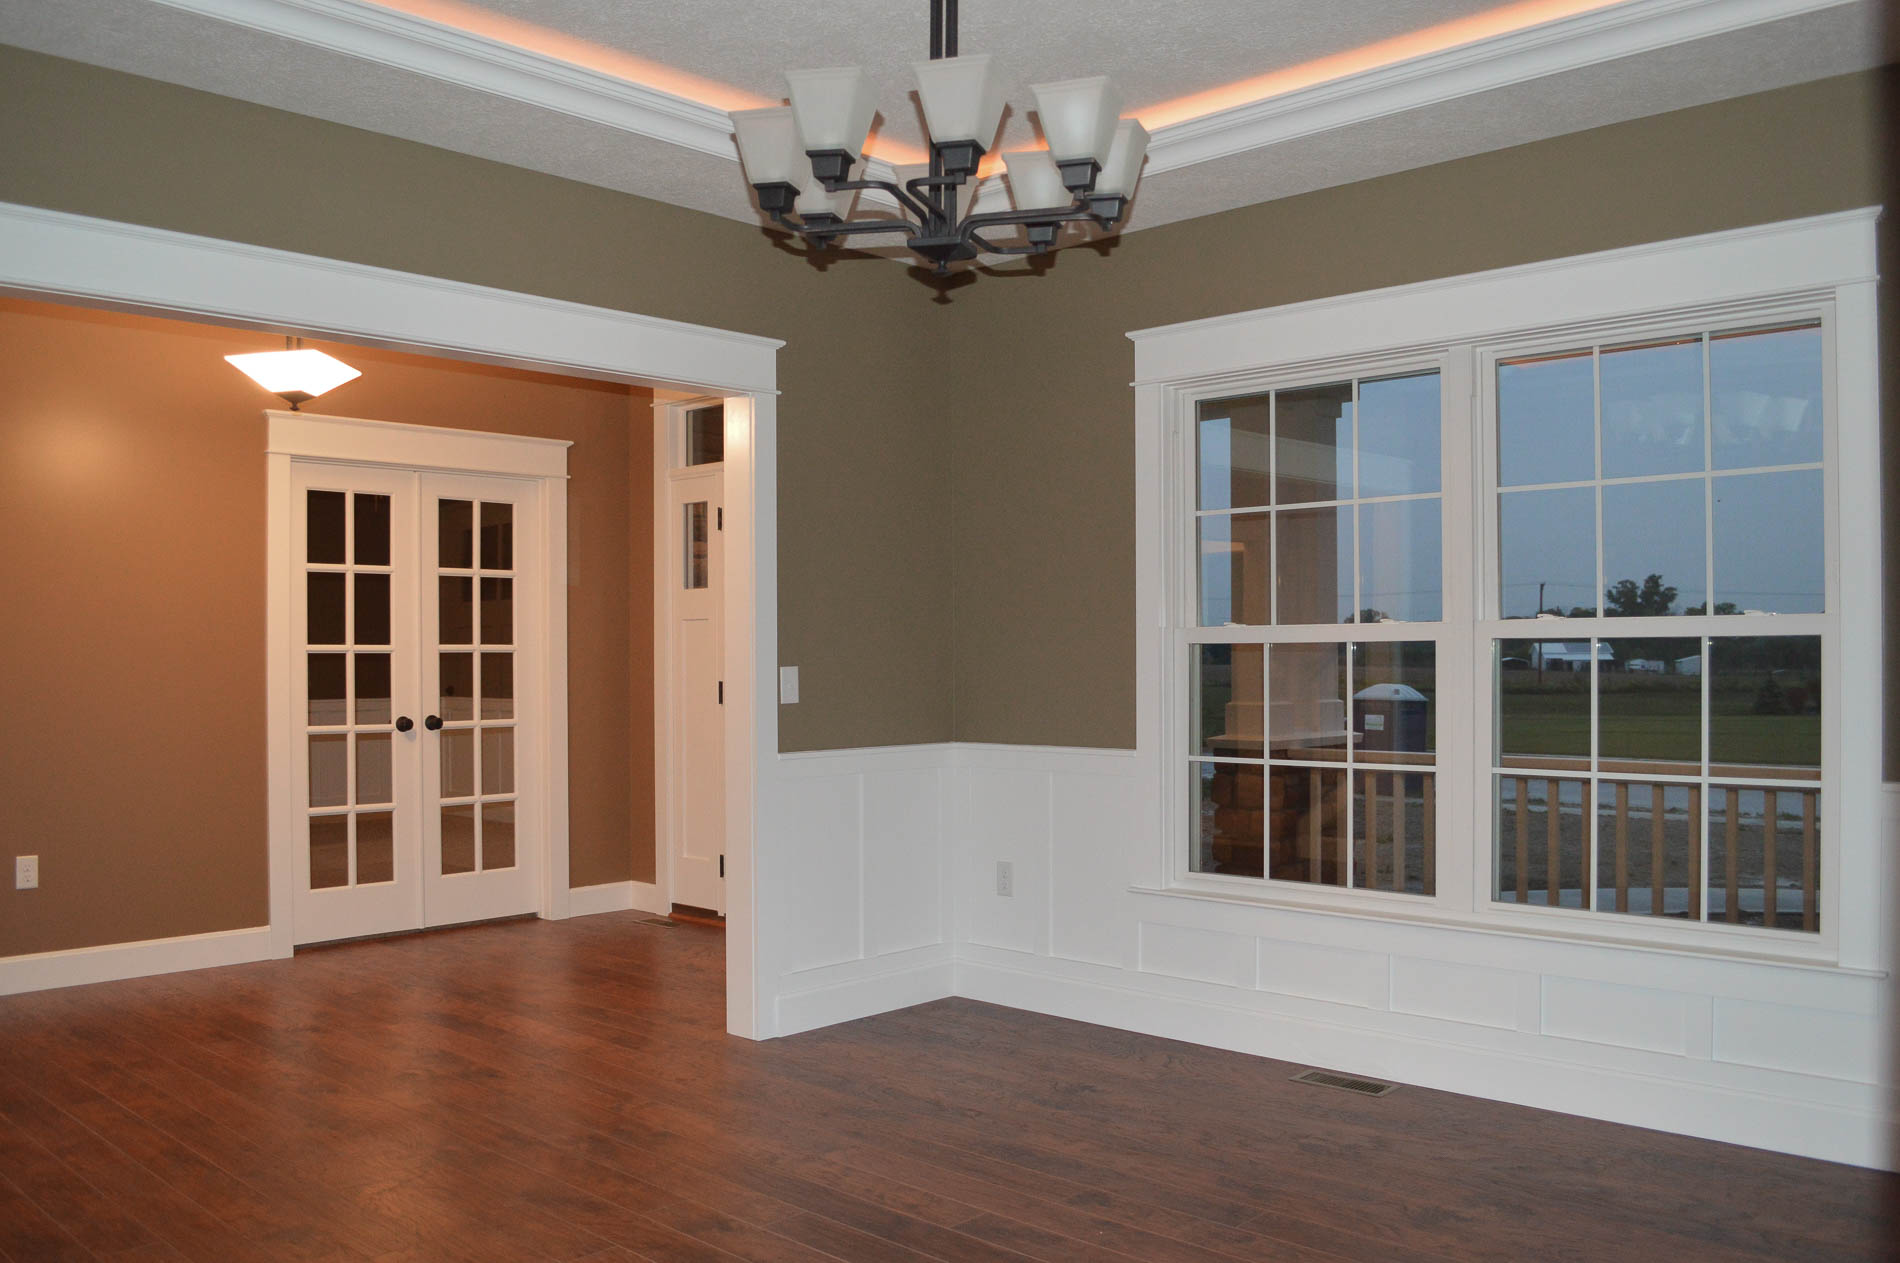 Dining room with North Park light fixture, trey ceiling and wainscot trim